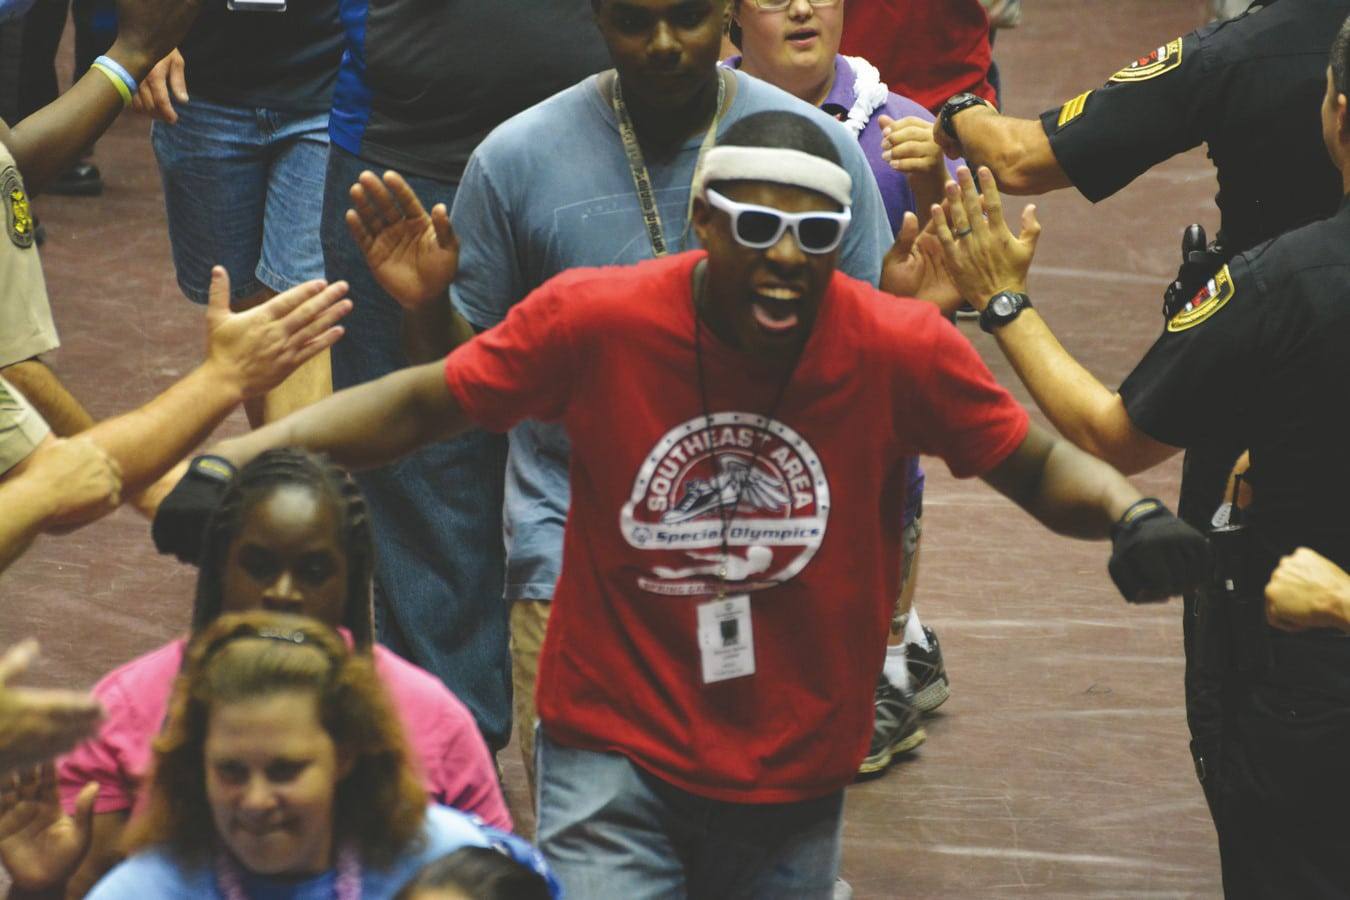 An ecstatic athlete with a big grin on their face runs through a tunnel of volunteers high-fiving them